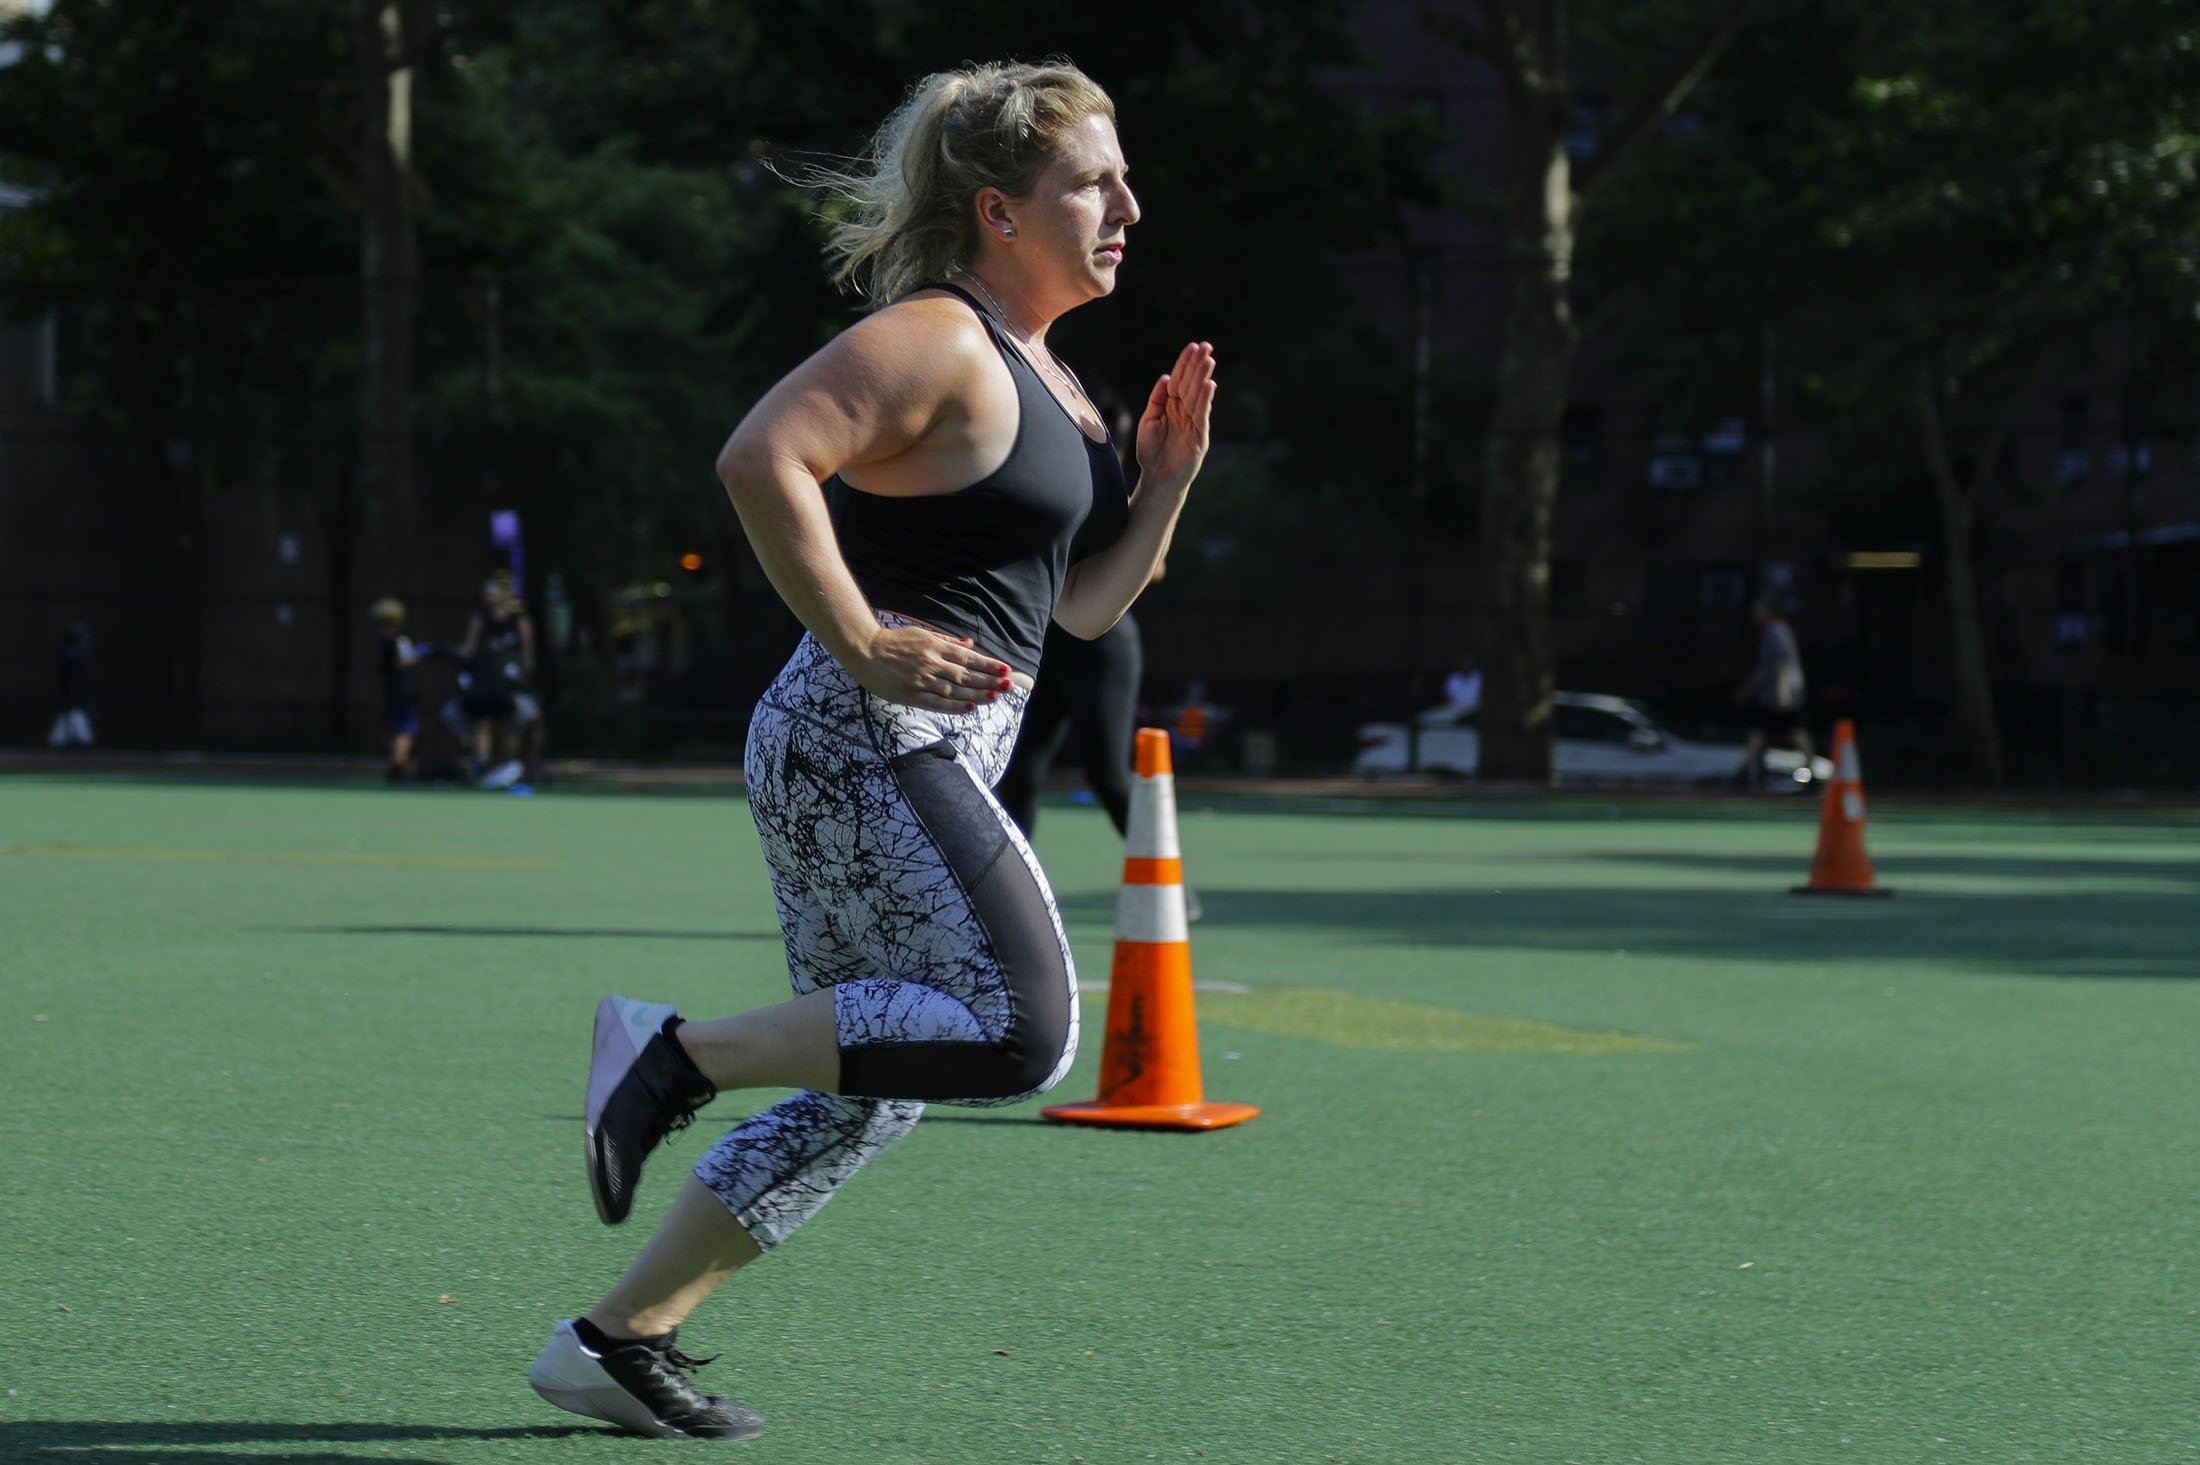 Lauren Wire works out during a fitness class Wednesday, July 15, 2020, in New York. Many Americans are changing clothing sizes depending on how they spent their time sheltering at home. (AP Photo)